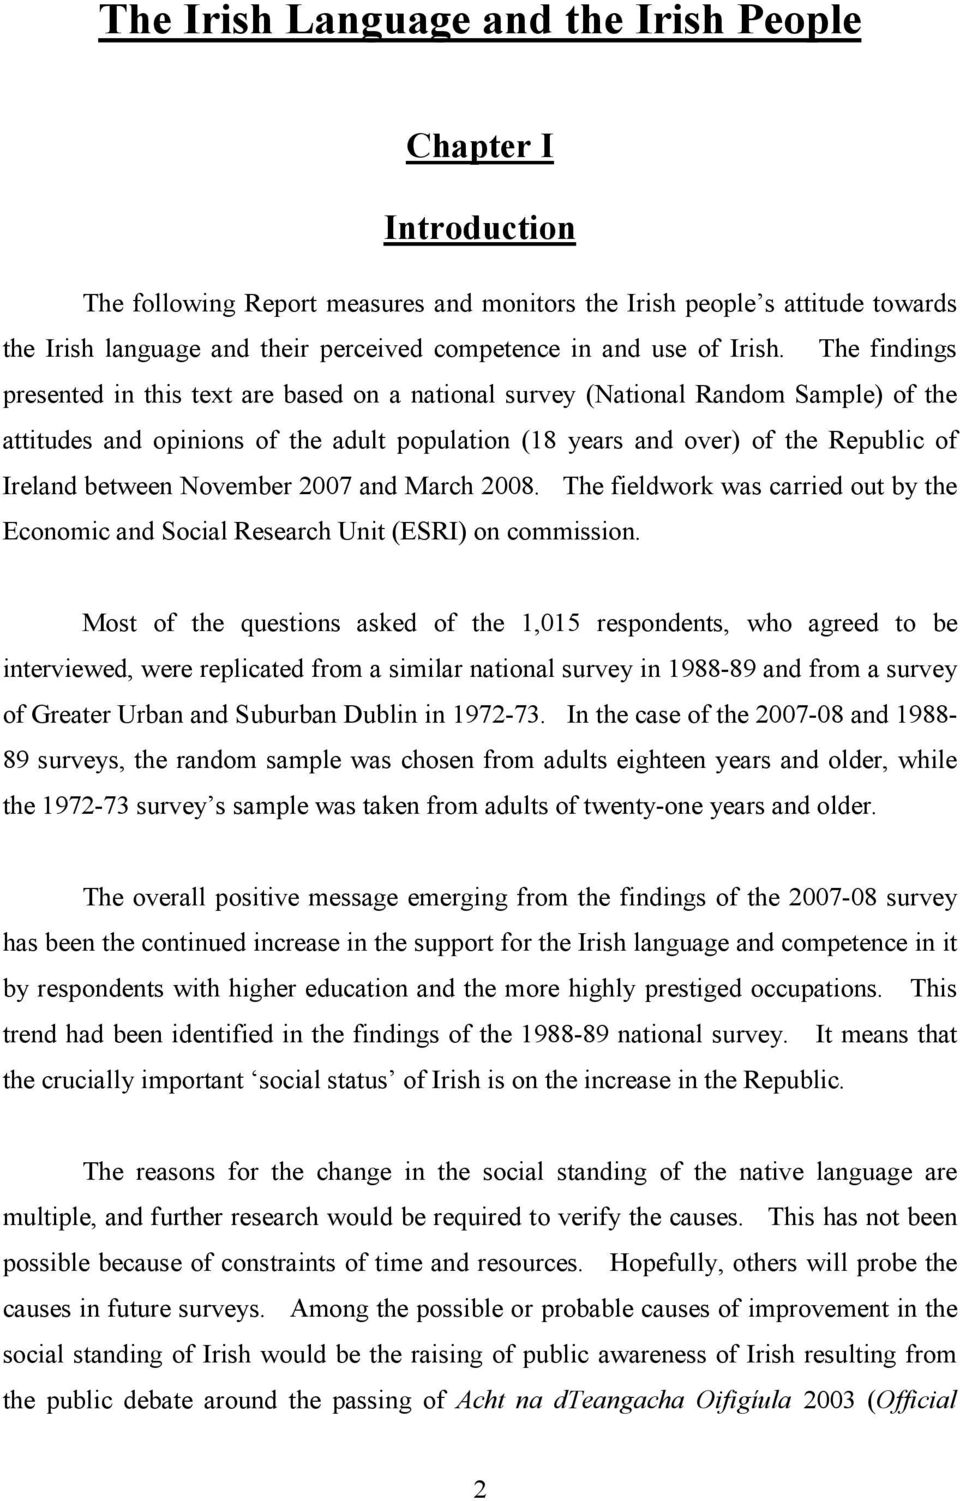 The findings presented in this text are based on a national survey (National Random Sample) of the attitudes and opinions of the adult population (18 years and over) of the Republic of Ireland